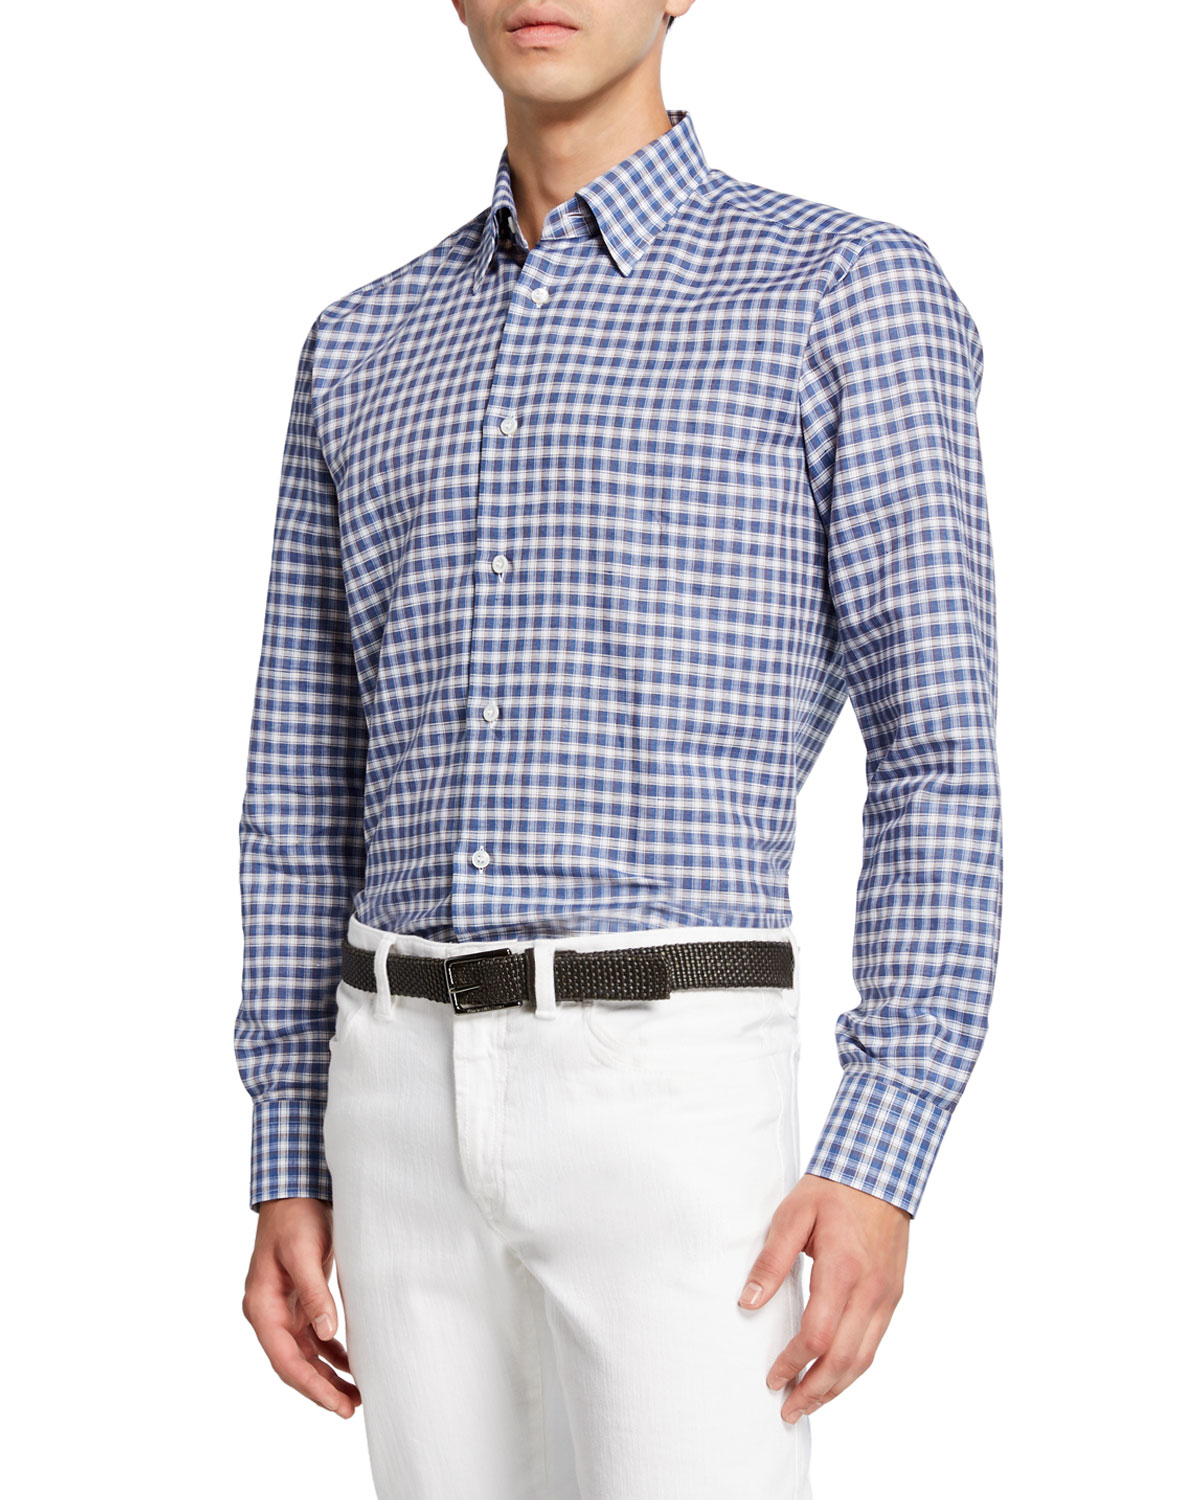 Brioni T-shirts MEN'S COTTON/LINEN CHECK SPORT SHIRT